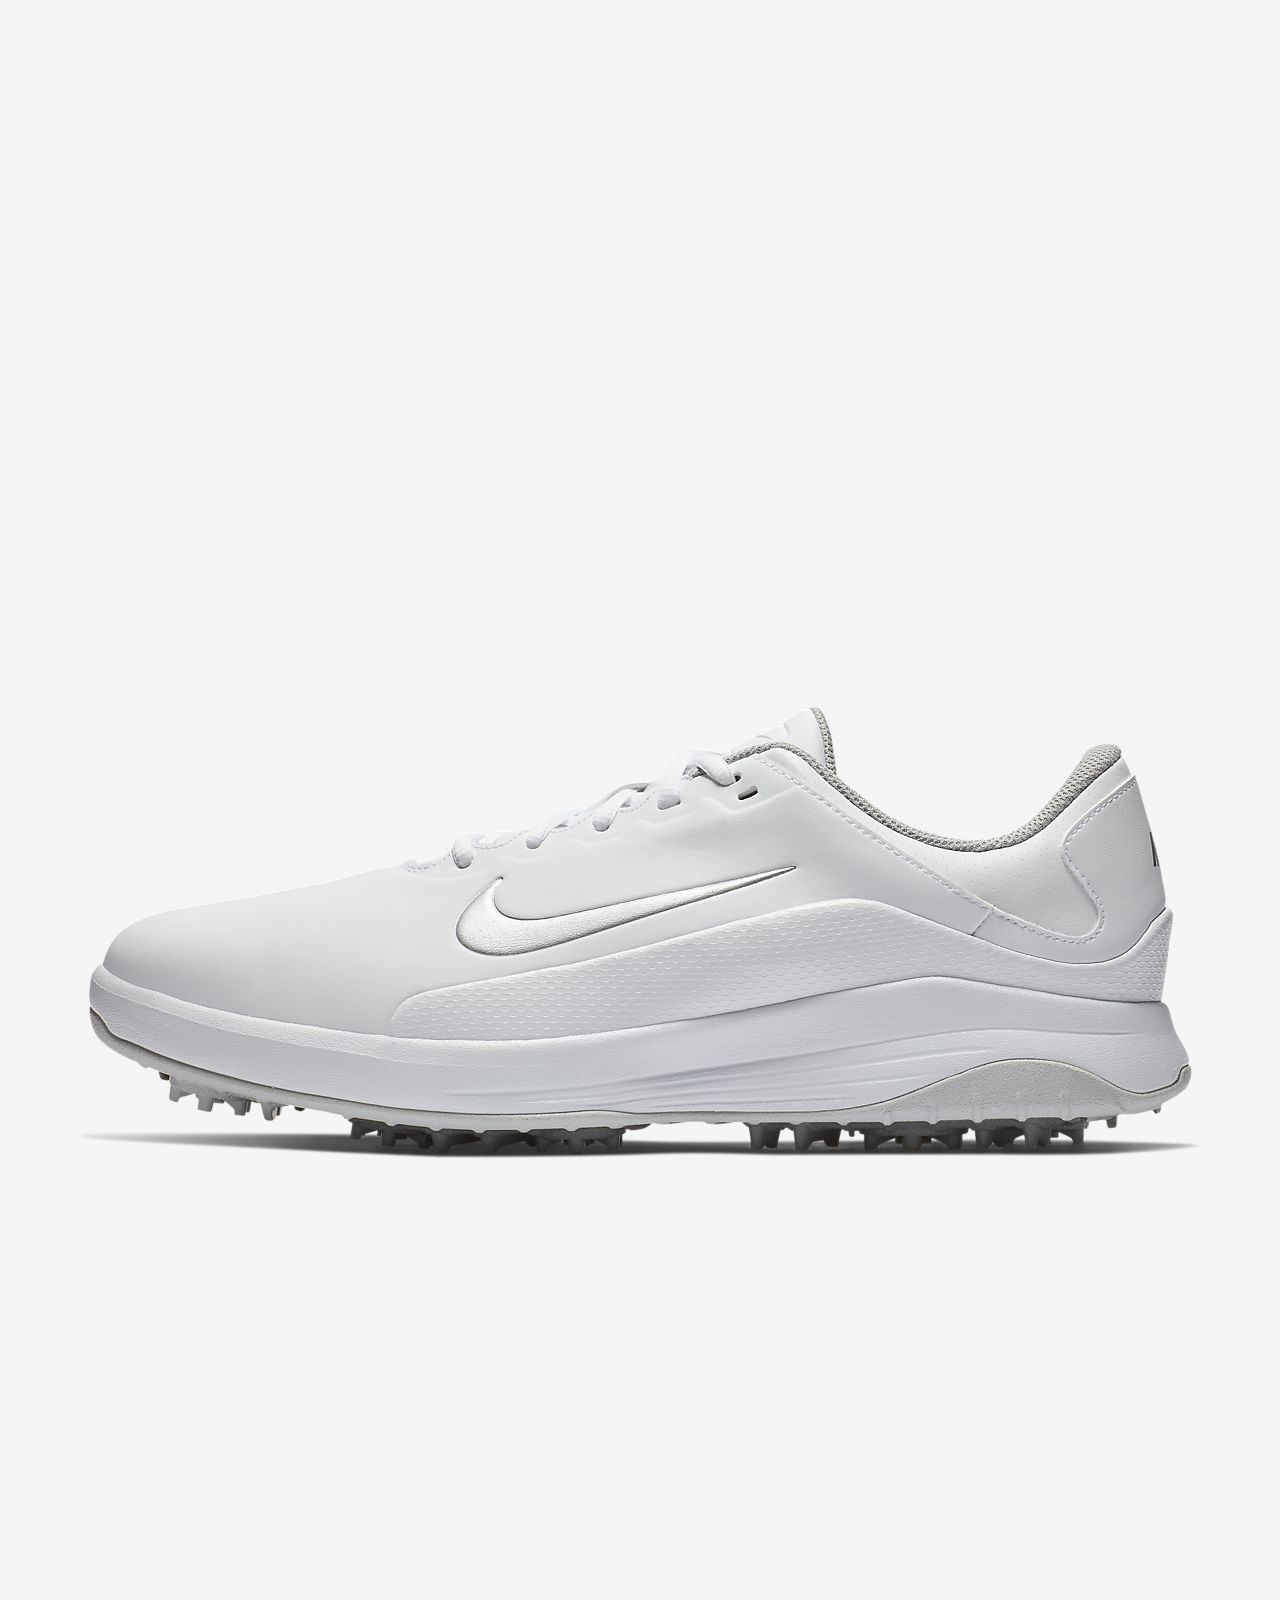 Nike Vapor Men's Golf Shoe (Wide)